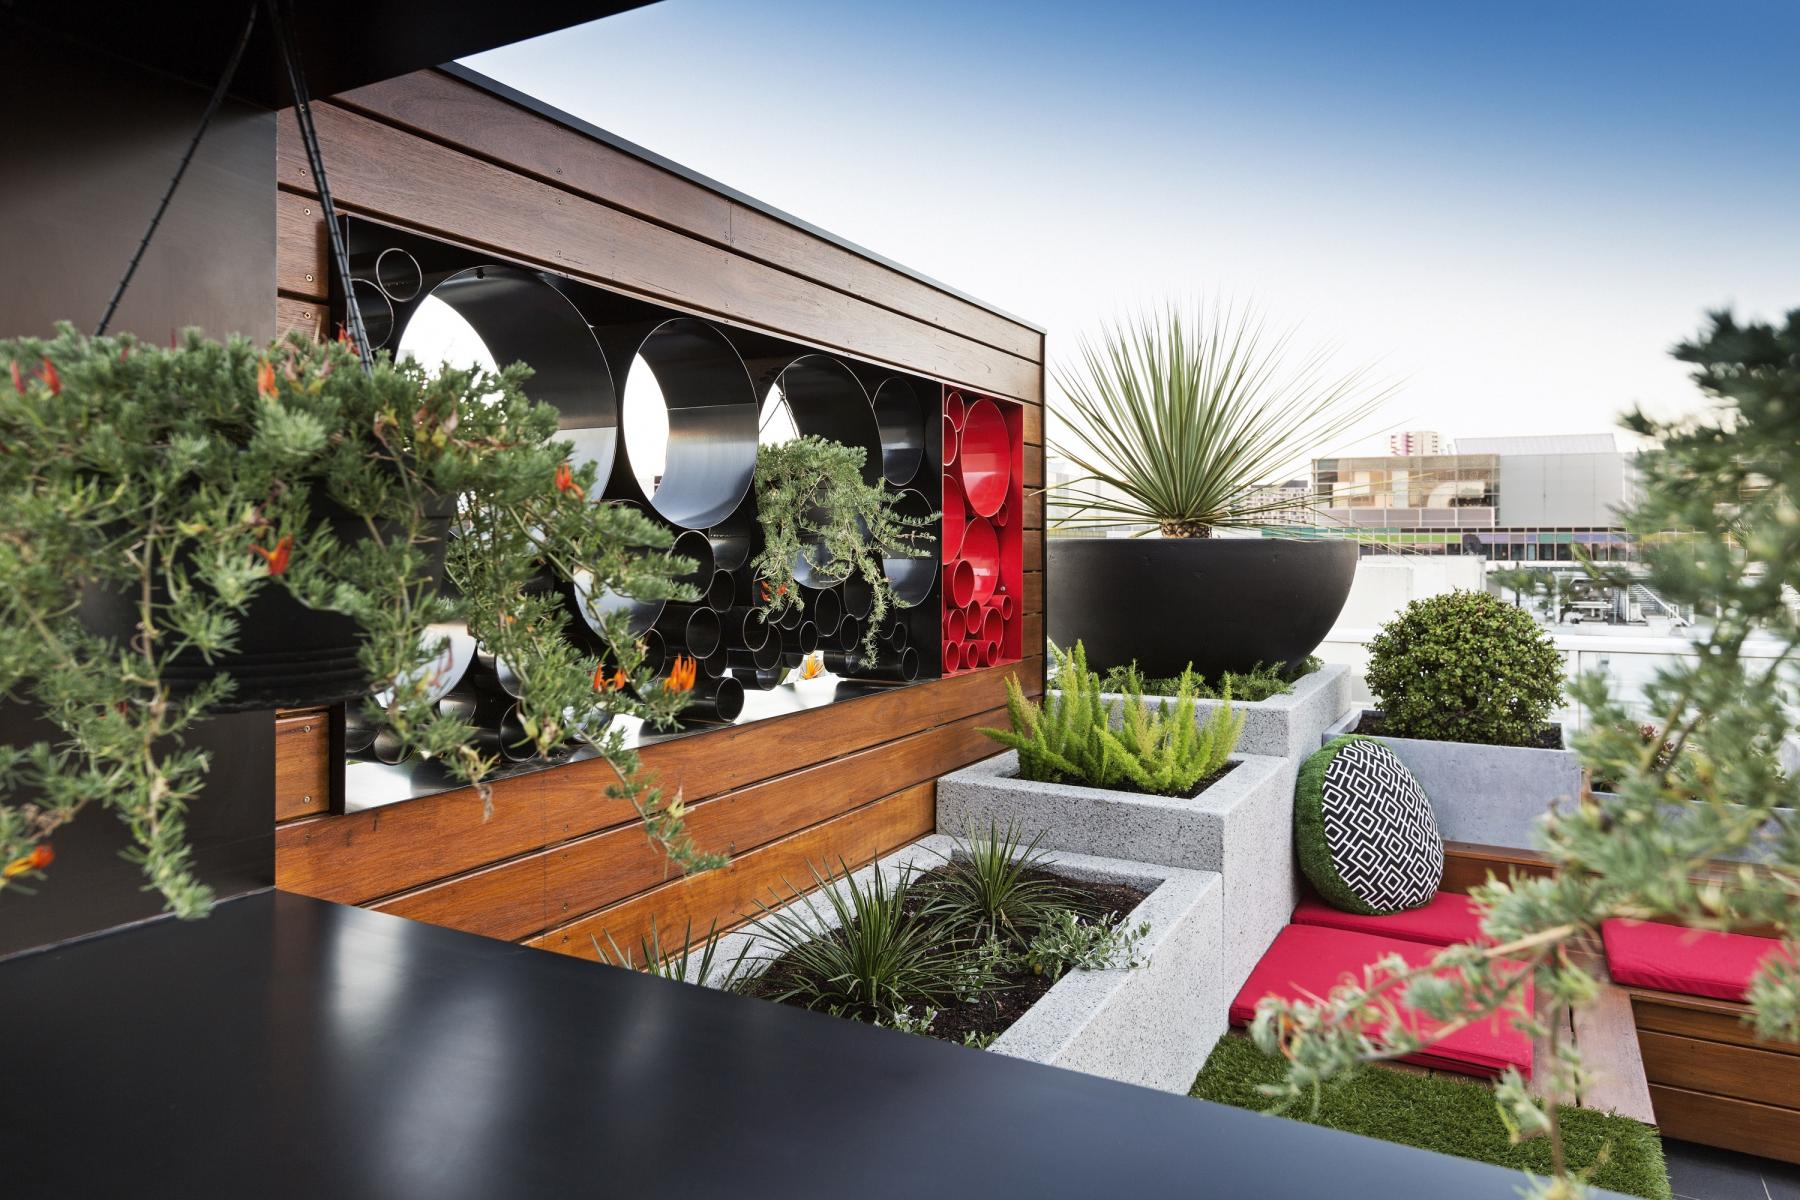 rooftop garden energy efficiency